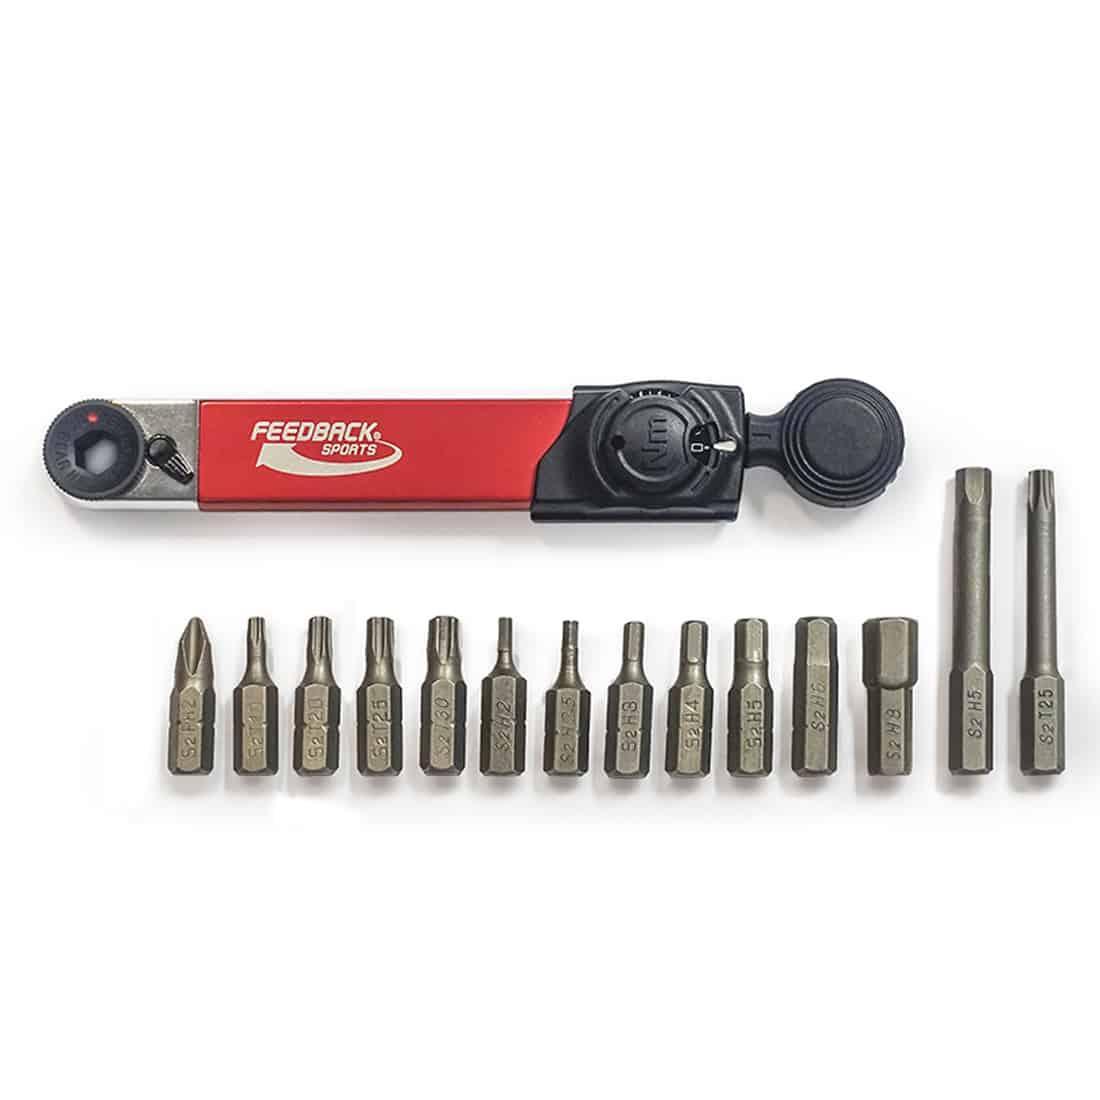 Feedback Sports Range Torque Ratchet Combo Professional Grade Bicycle Tool 17360